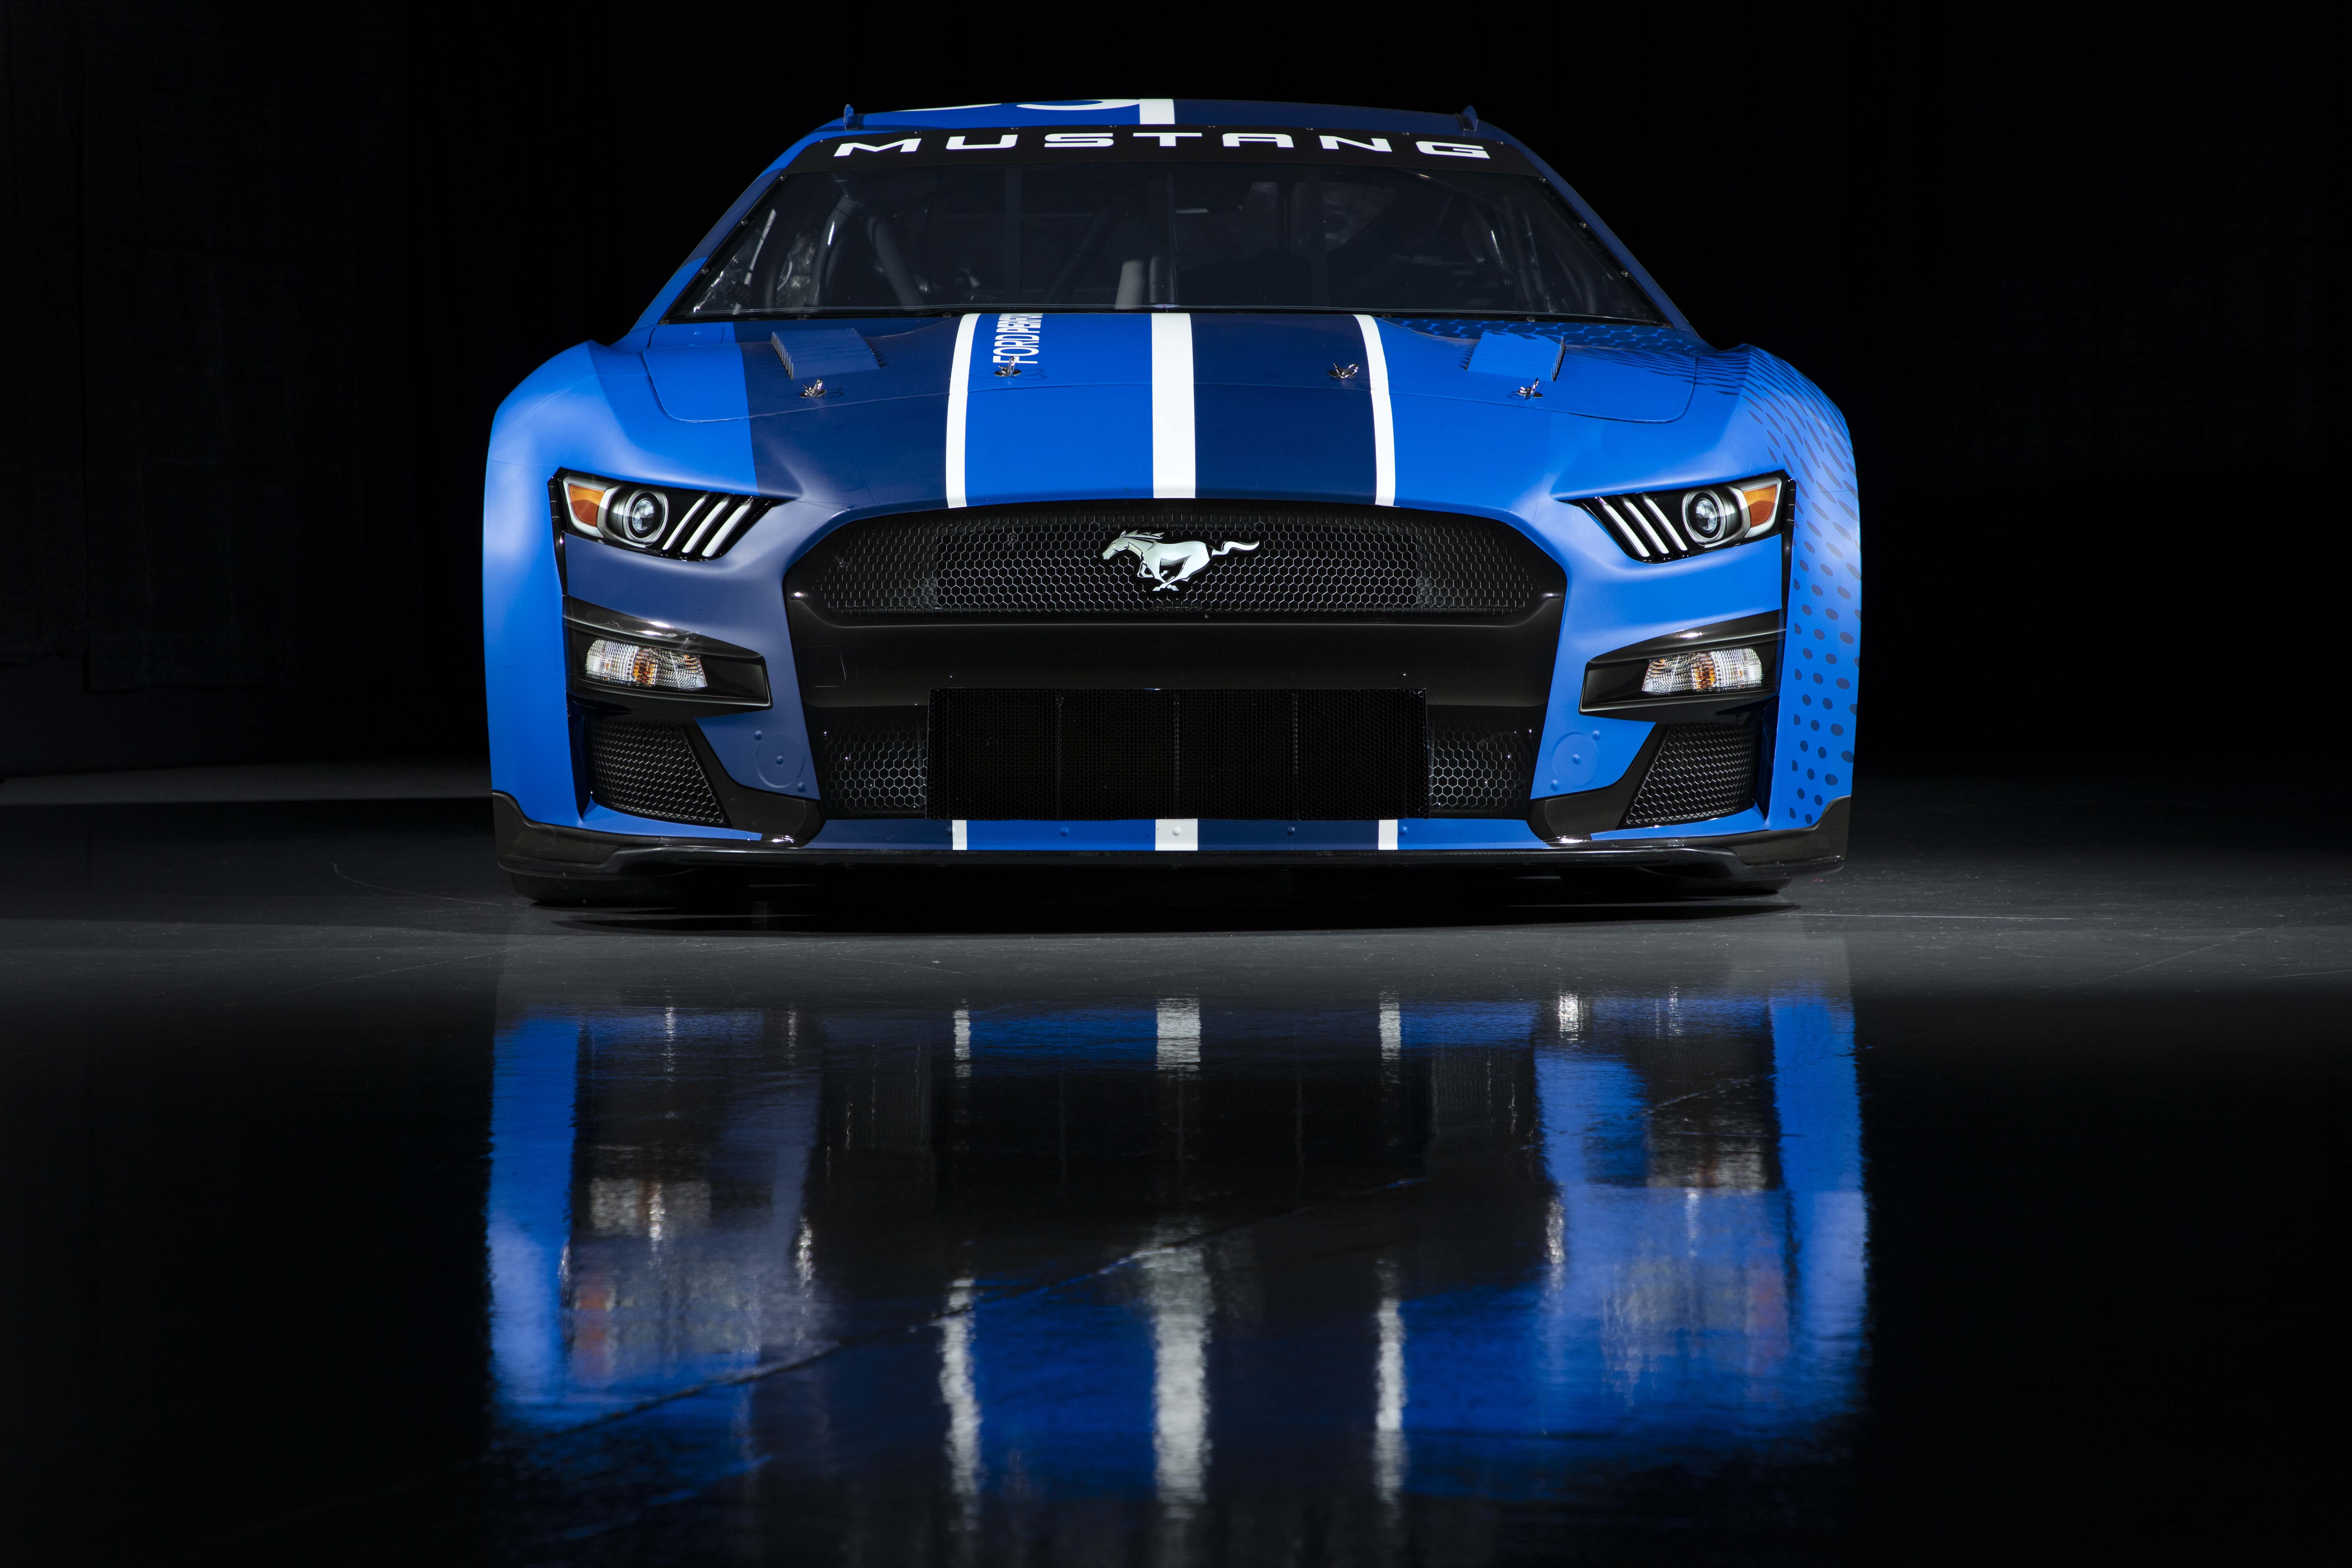 Ford Mustang - 2022 Next Gen Car - Front Photo